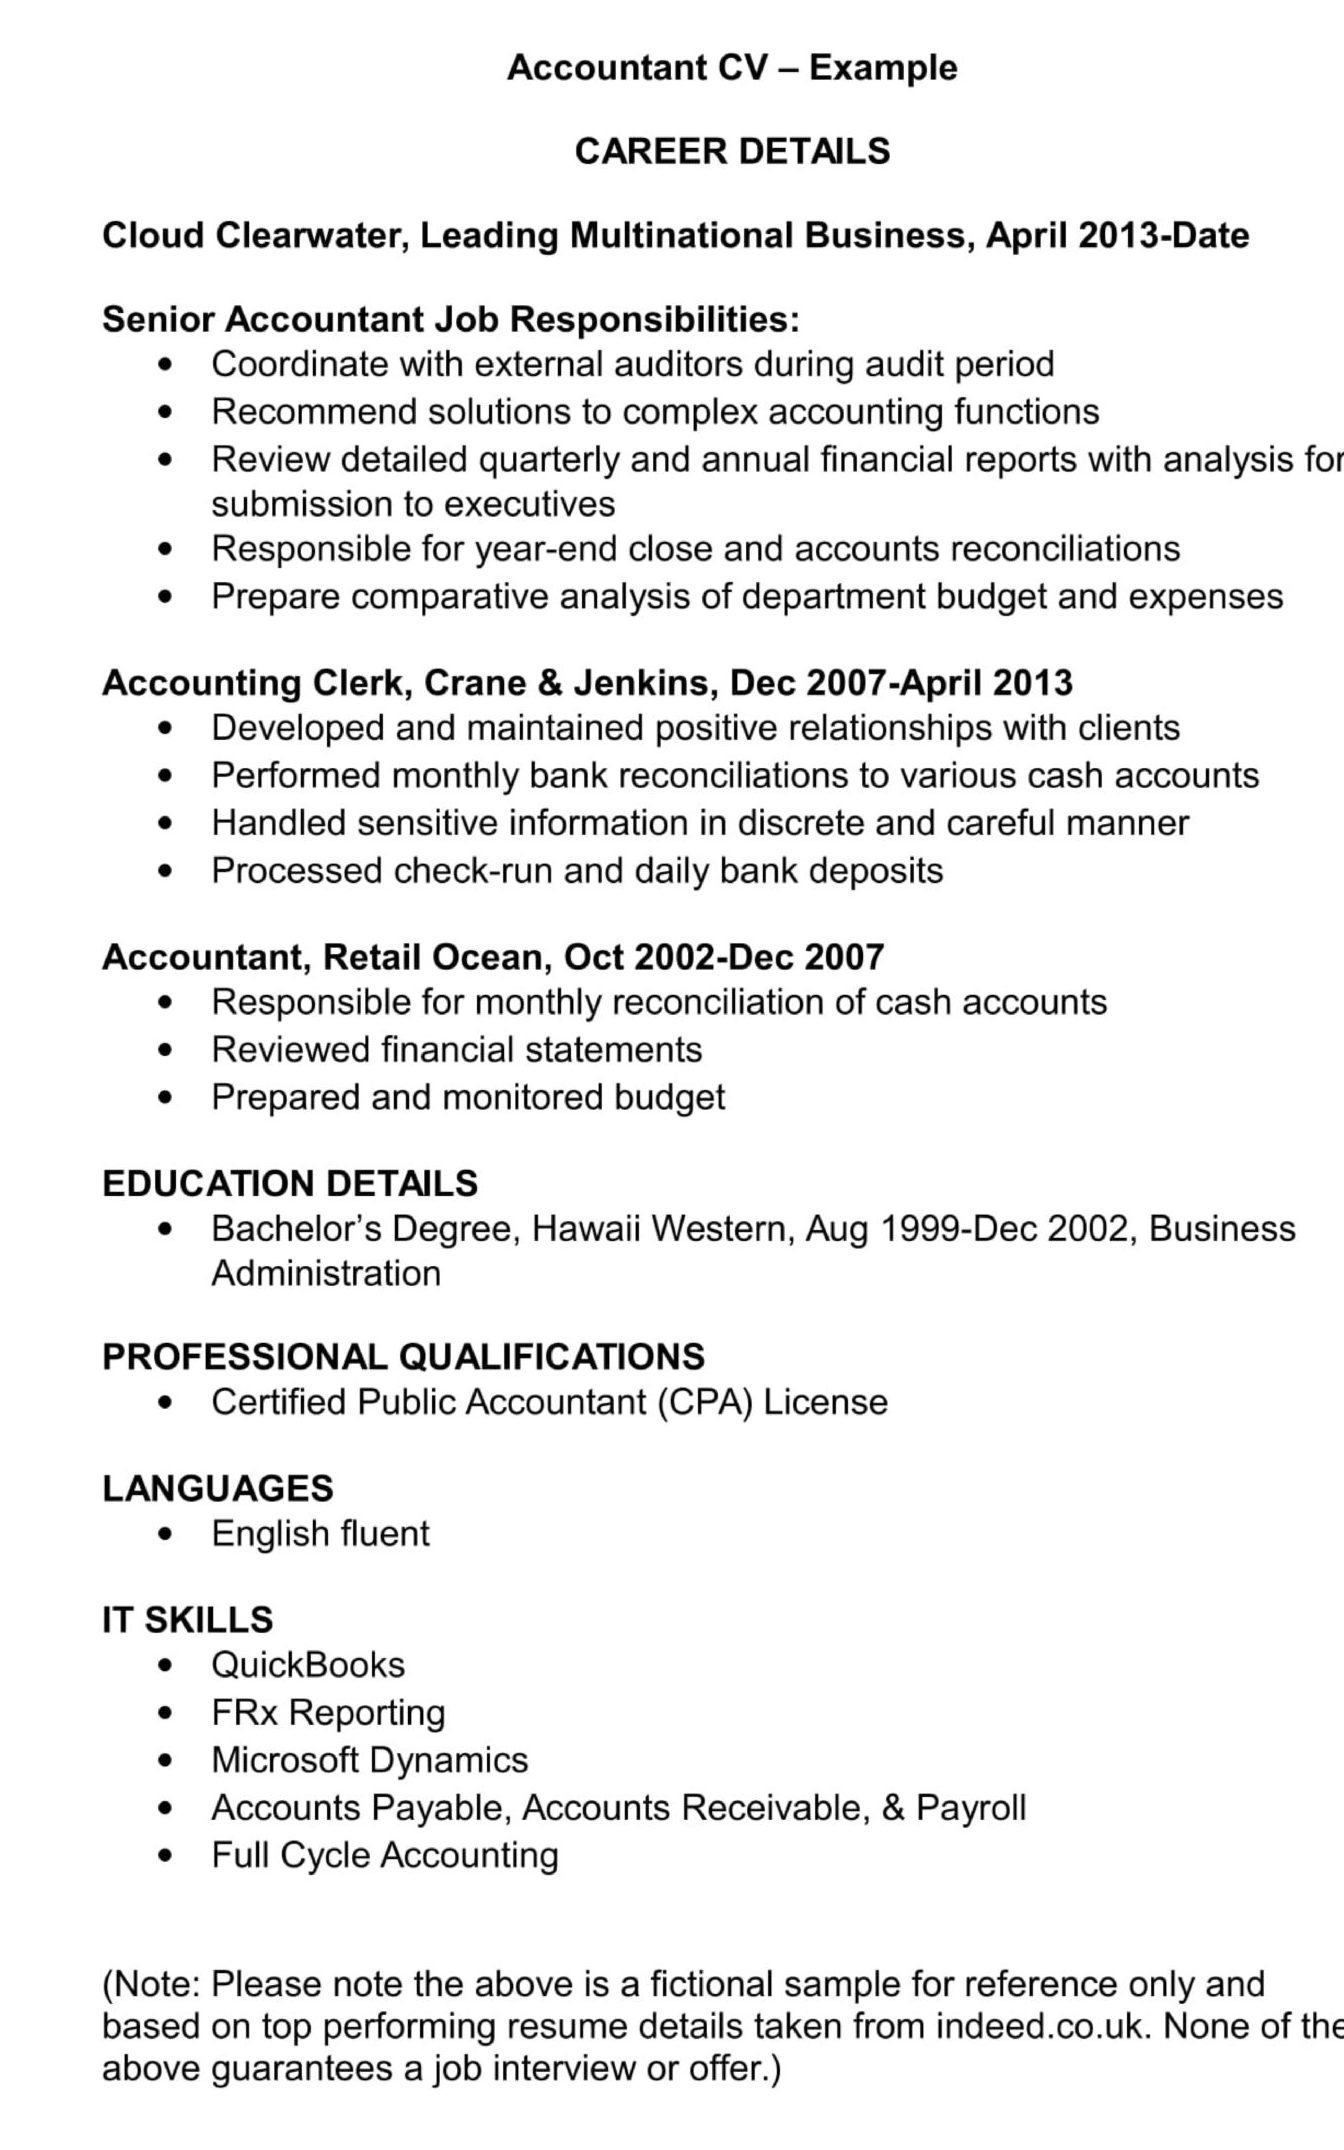 Accountant CV Template And Examples